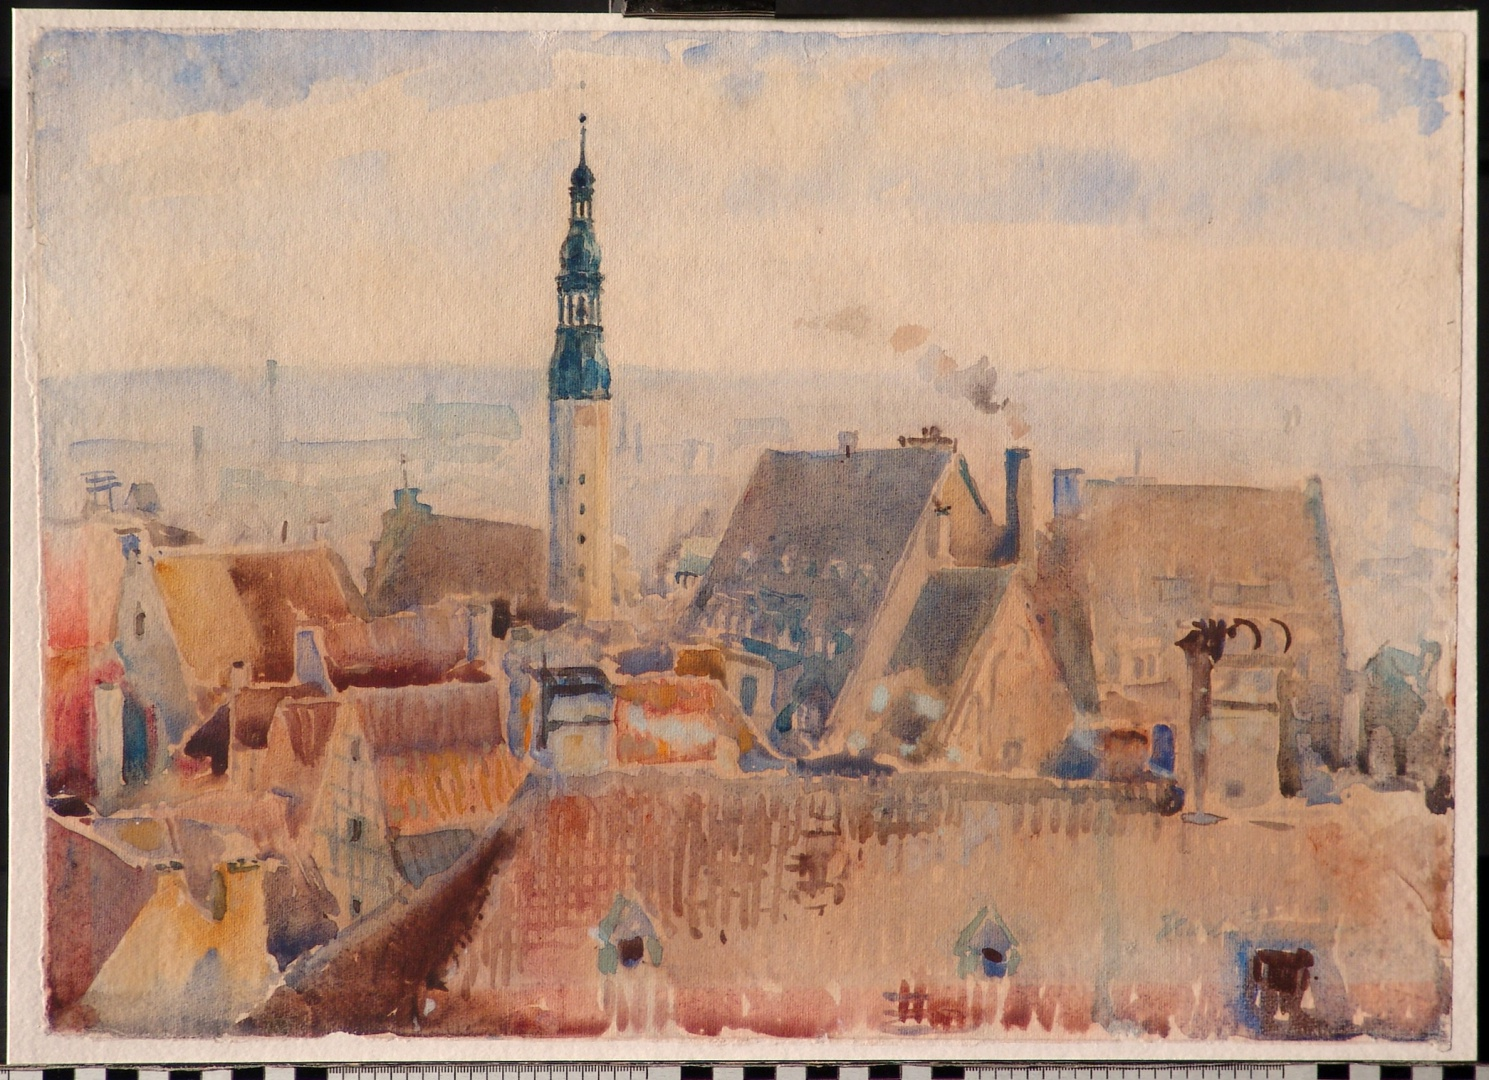 ill 1. Tallinn – watercolour by K. Burman. Damage – the part of the watercolour with no passe-partout has faded.